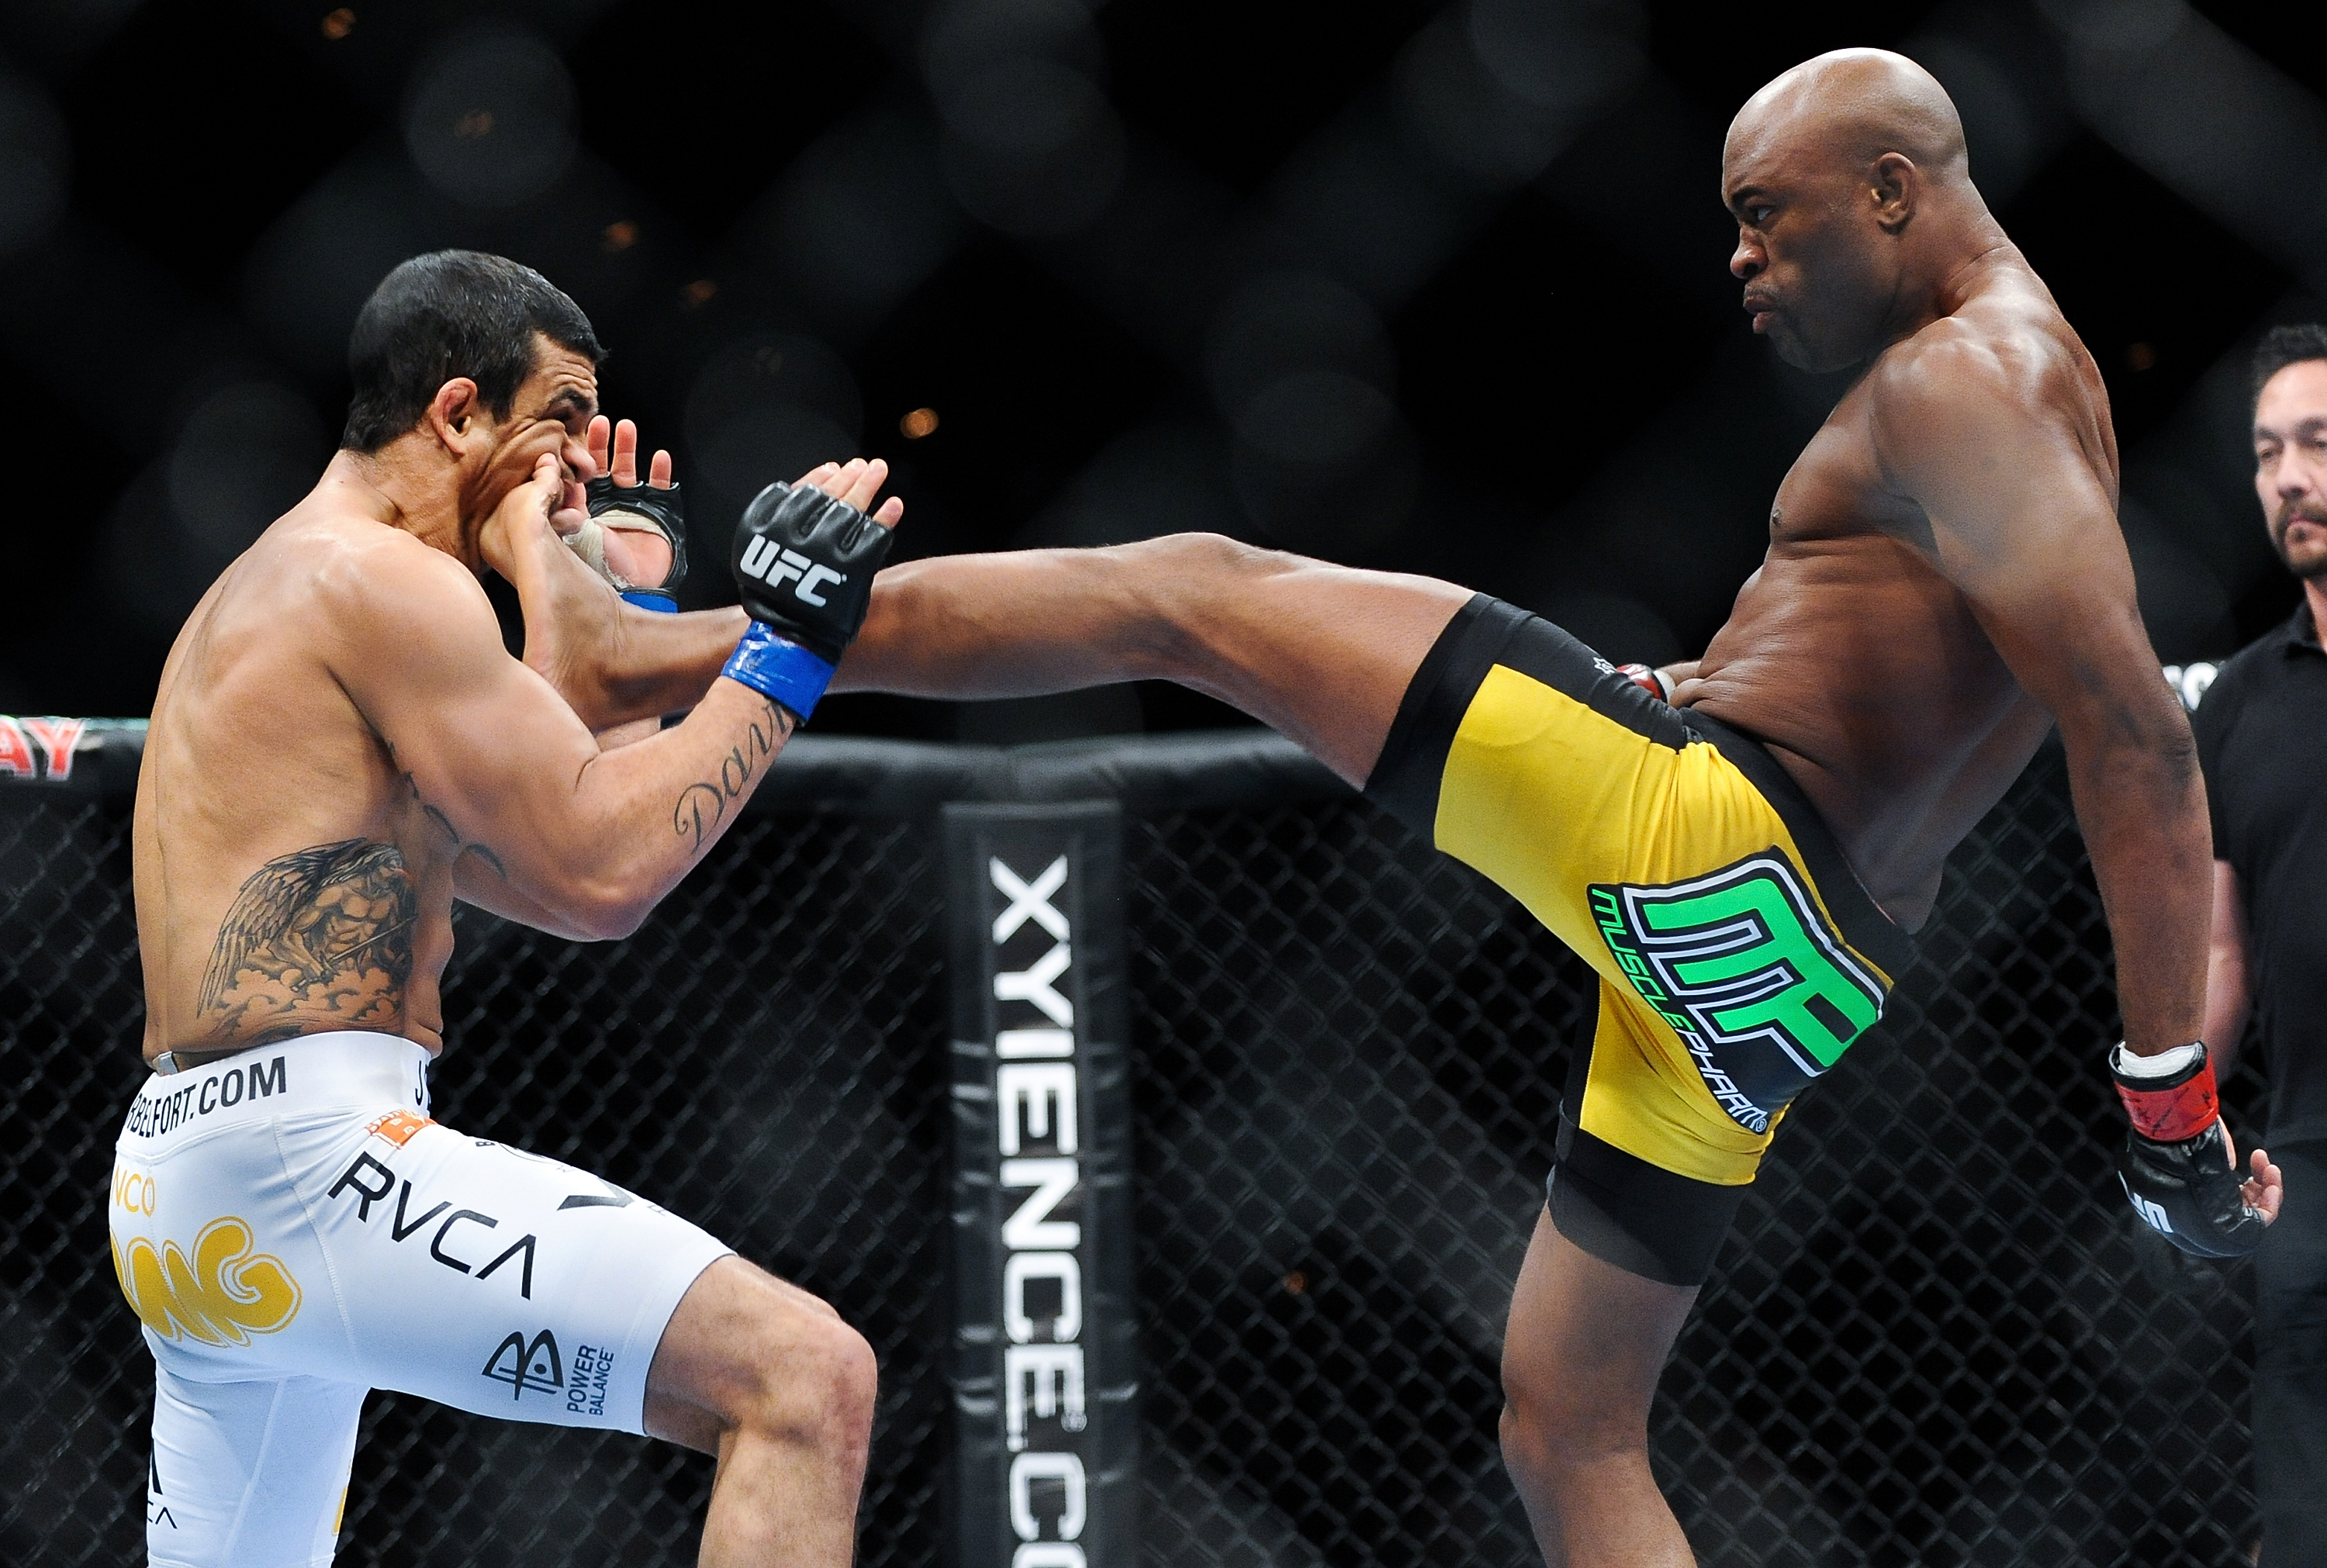 Anderson Silva lands a kick to the jaw of Vitor Belfort on Feb. 5, 2011. (Getty)